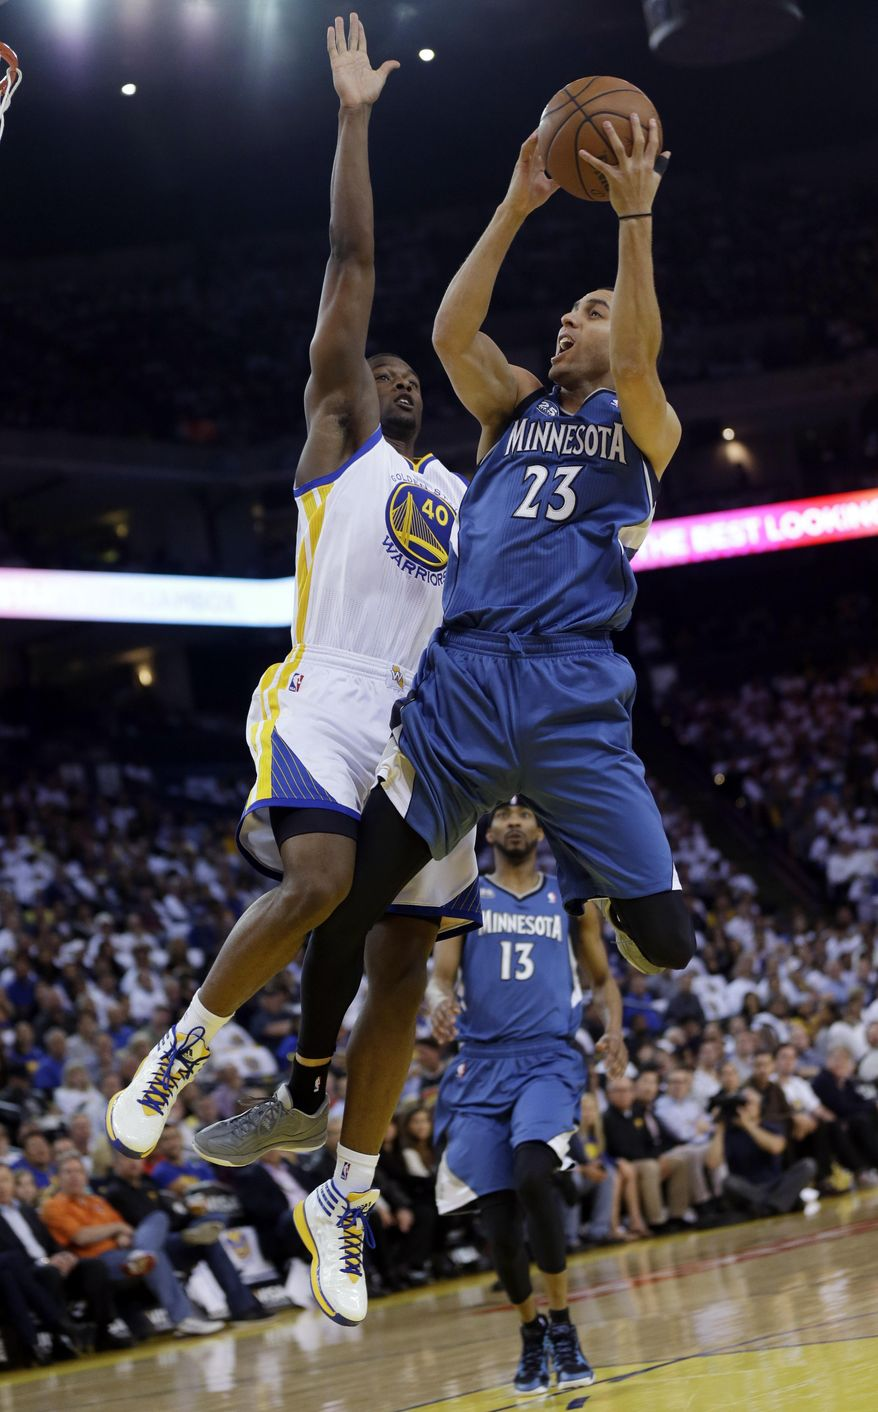 Minnesota Timberwolves' Kevin Martin (23), right, drives to the basket as Golden State Warriors' Harrison Barnes (40) defends during the first half of an NBA basketball game on Monday, April 14, 2014, in Oakland, Calif. (AP Photo/Marcio Jose Sanchez)